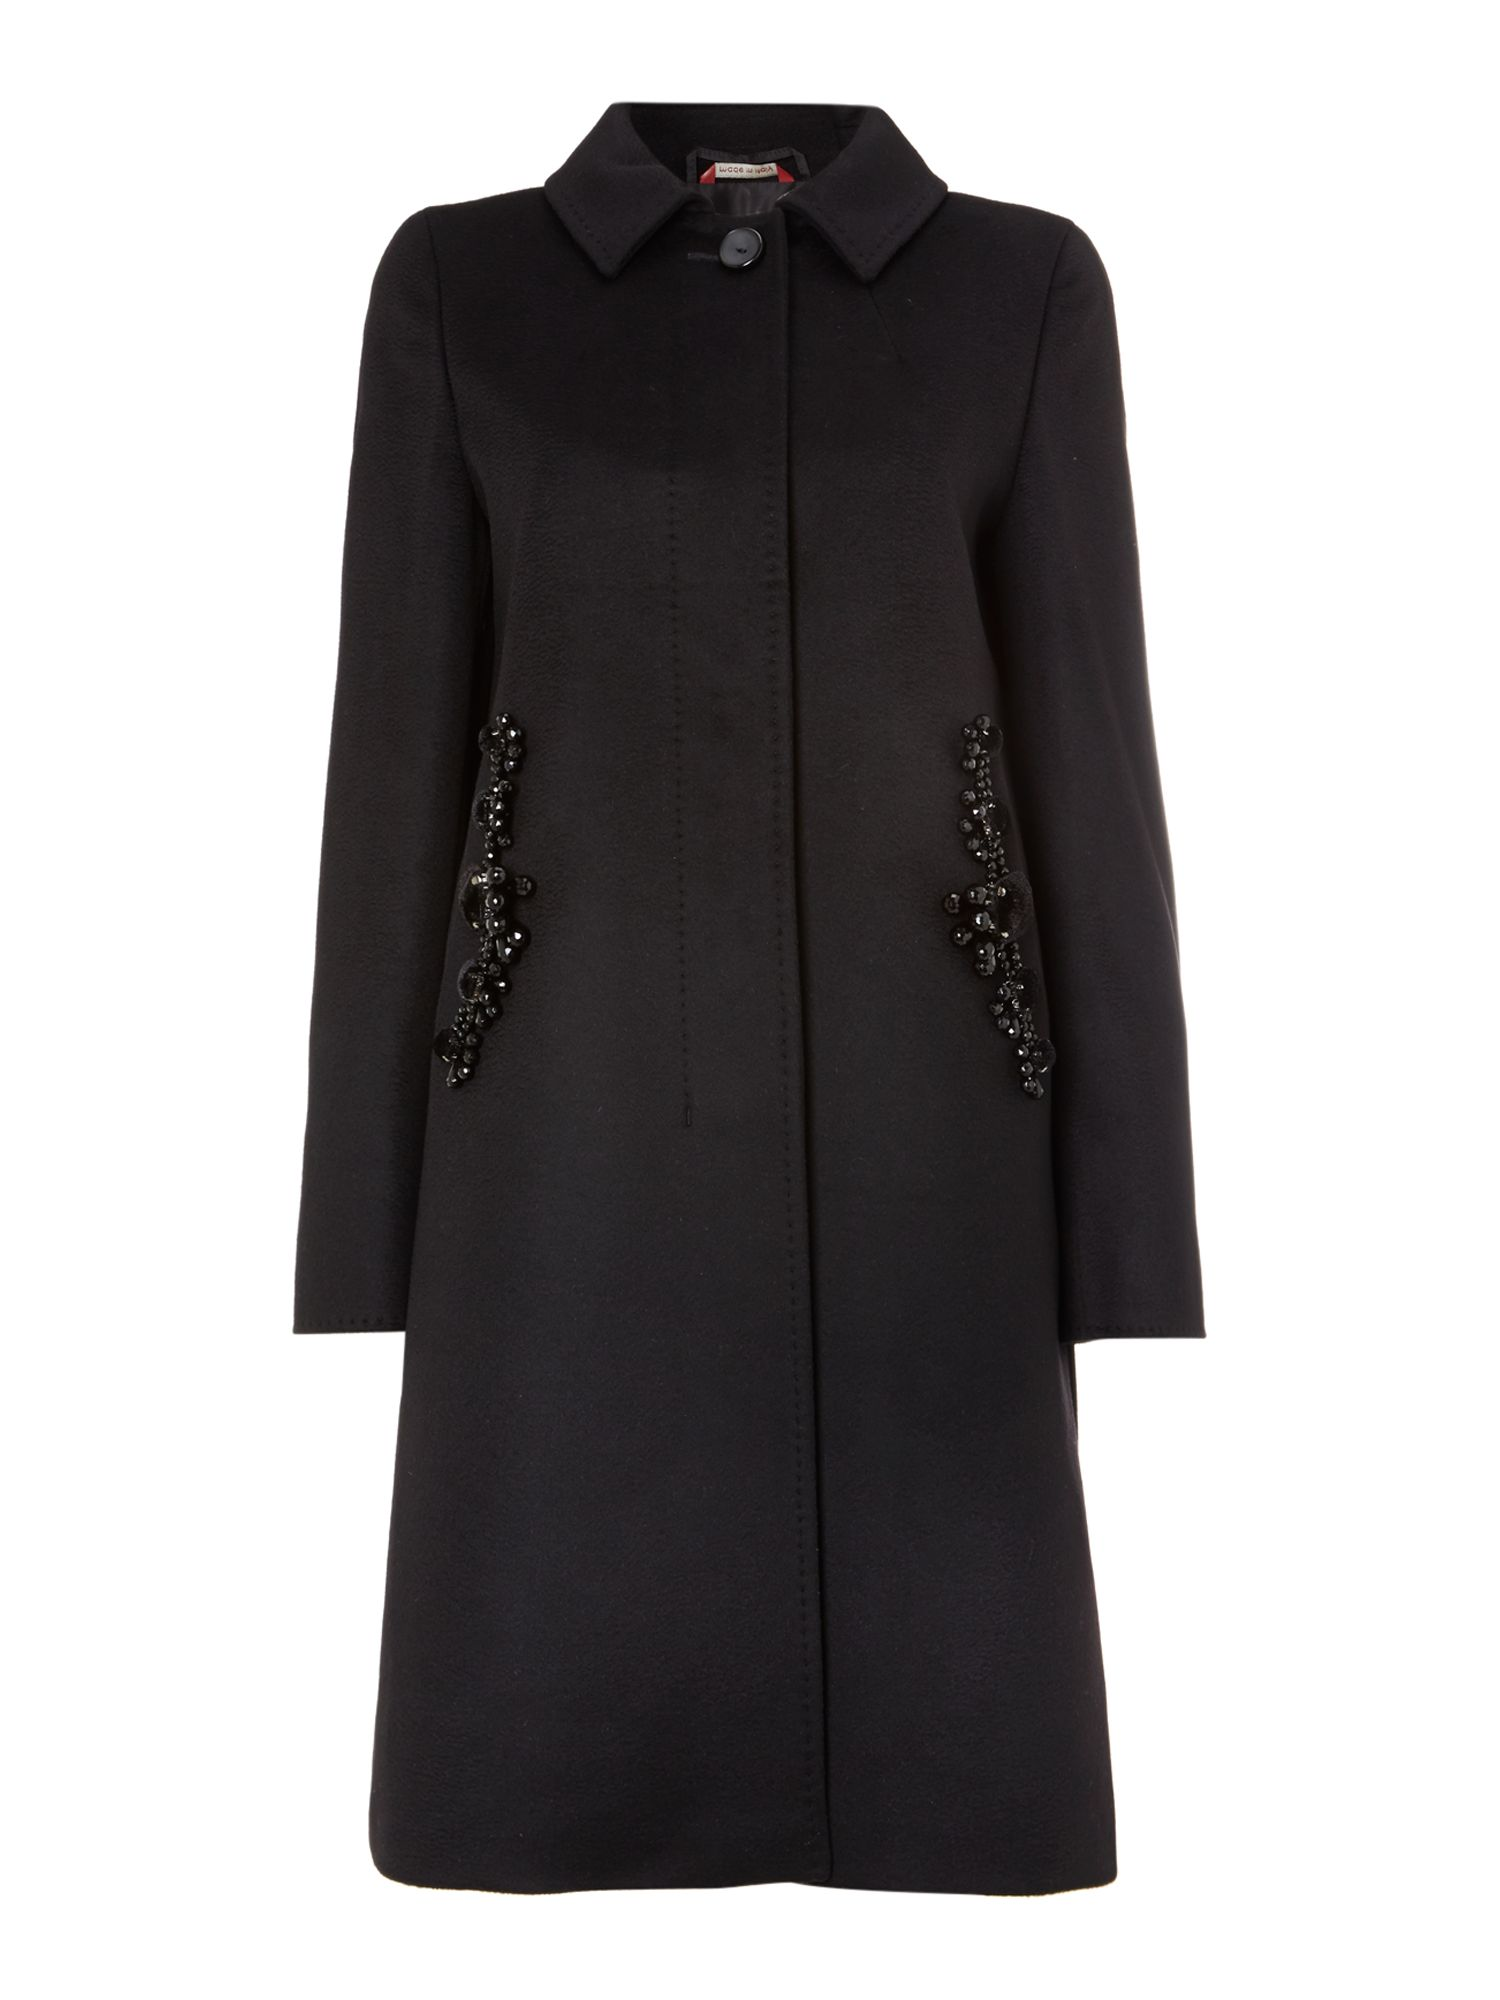 Colmo coat with pocket embellishment